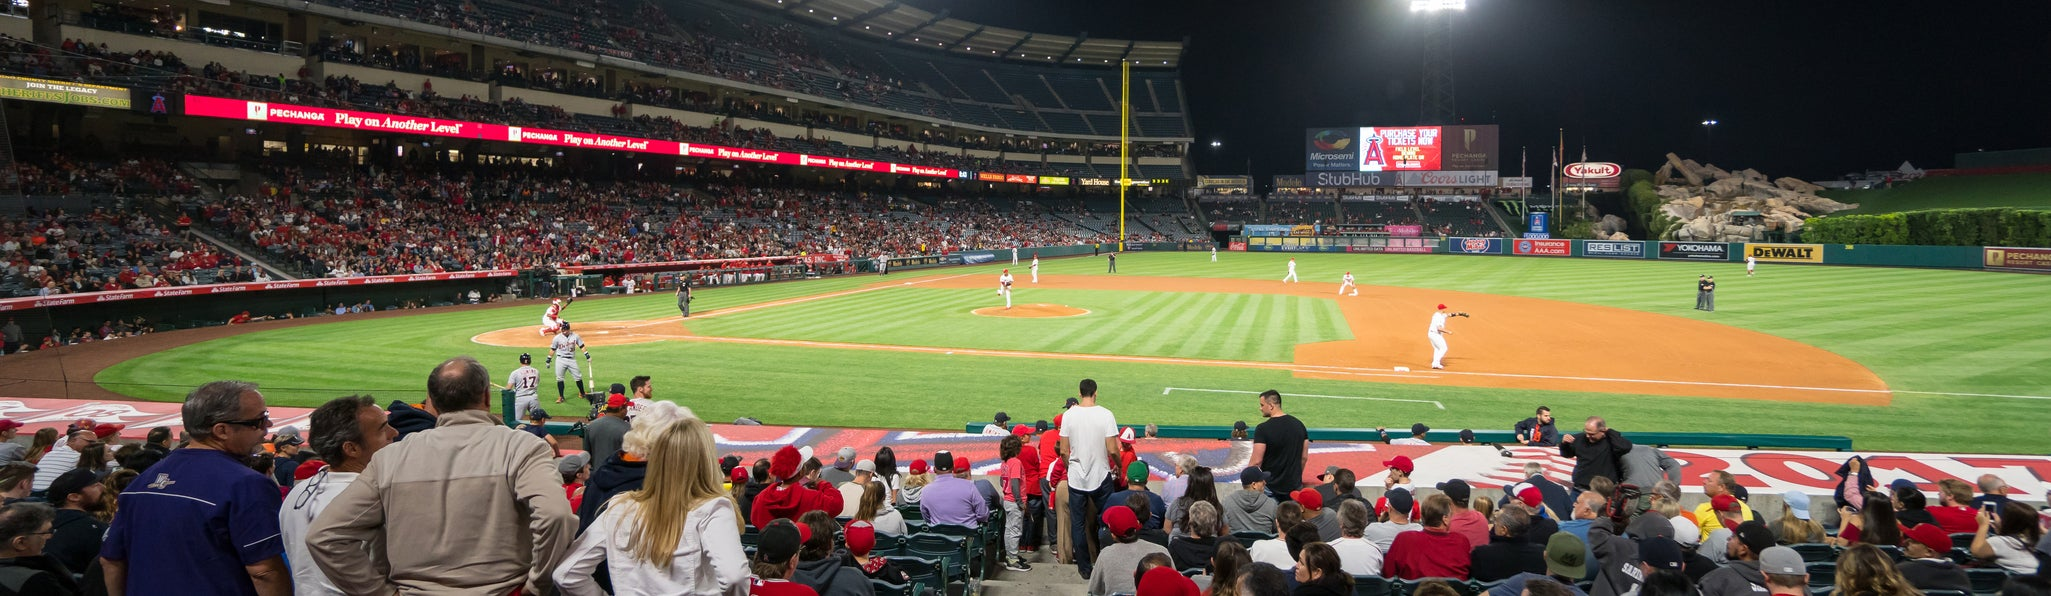 Seat view from Field MVP